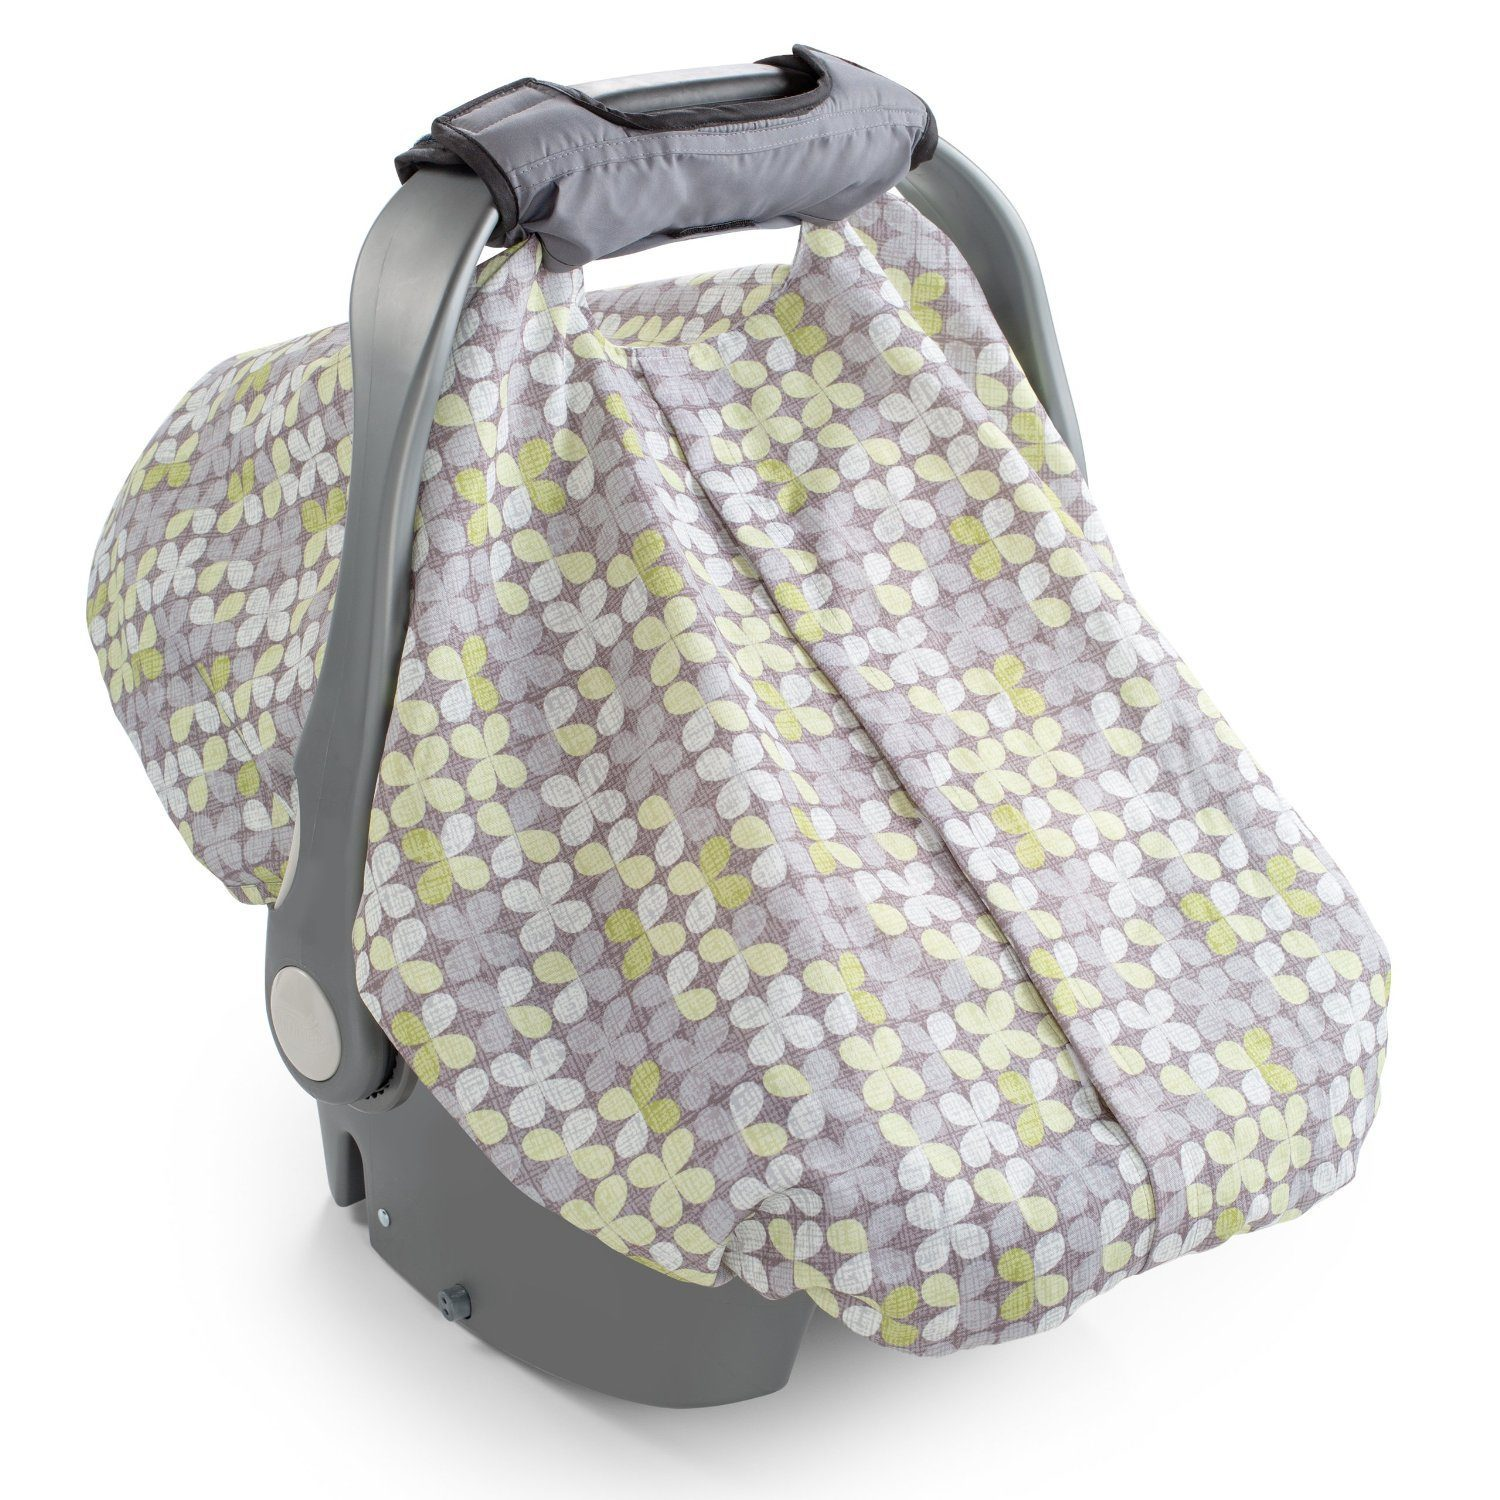 Summer Infant 2-in-1 Carry and Cover Baby Car Seat Cover